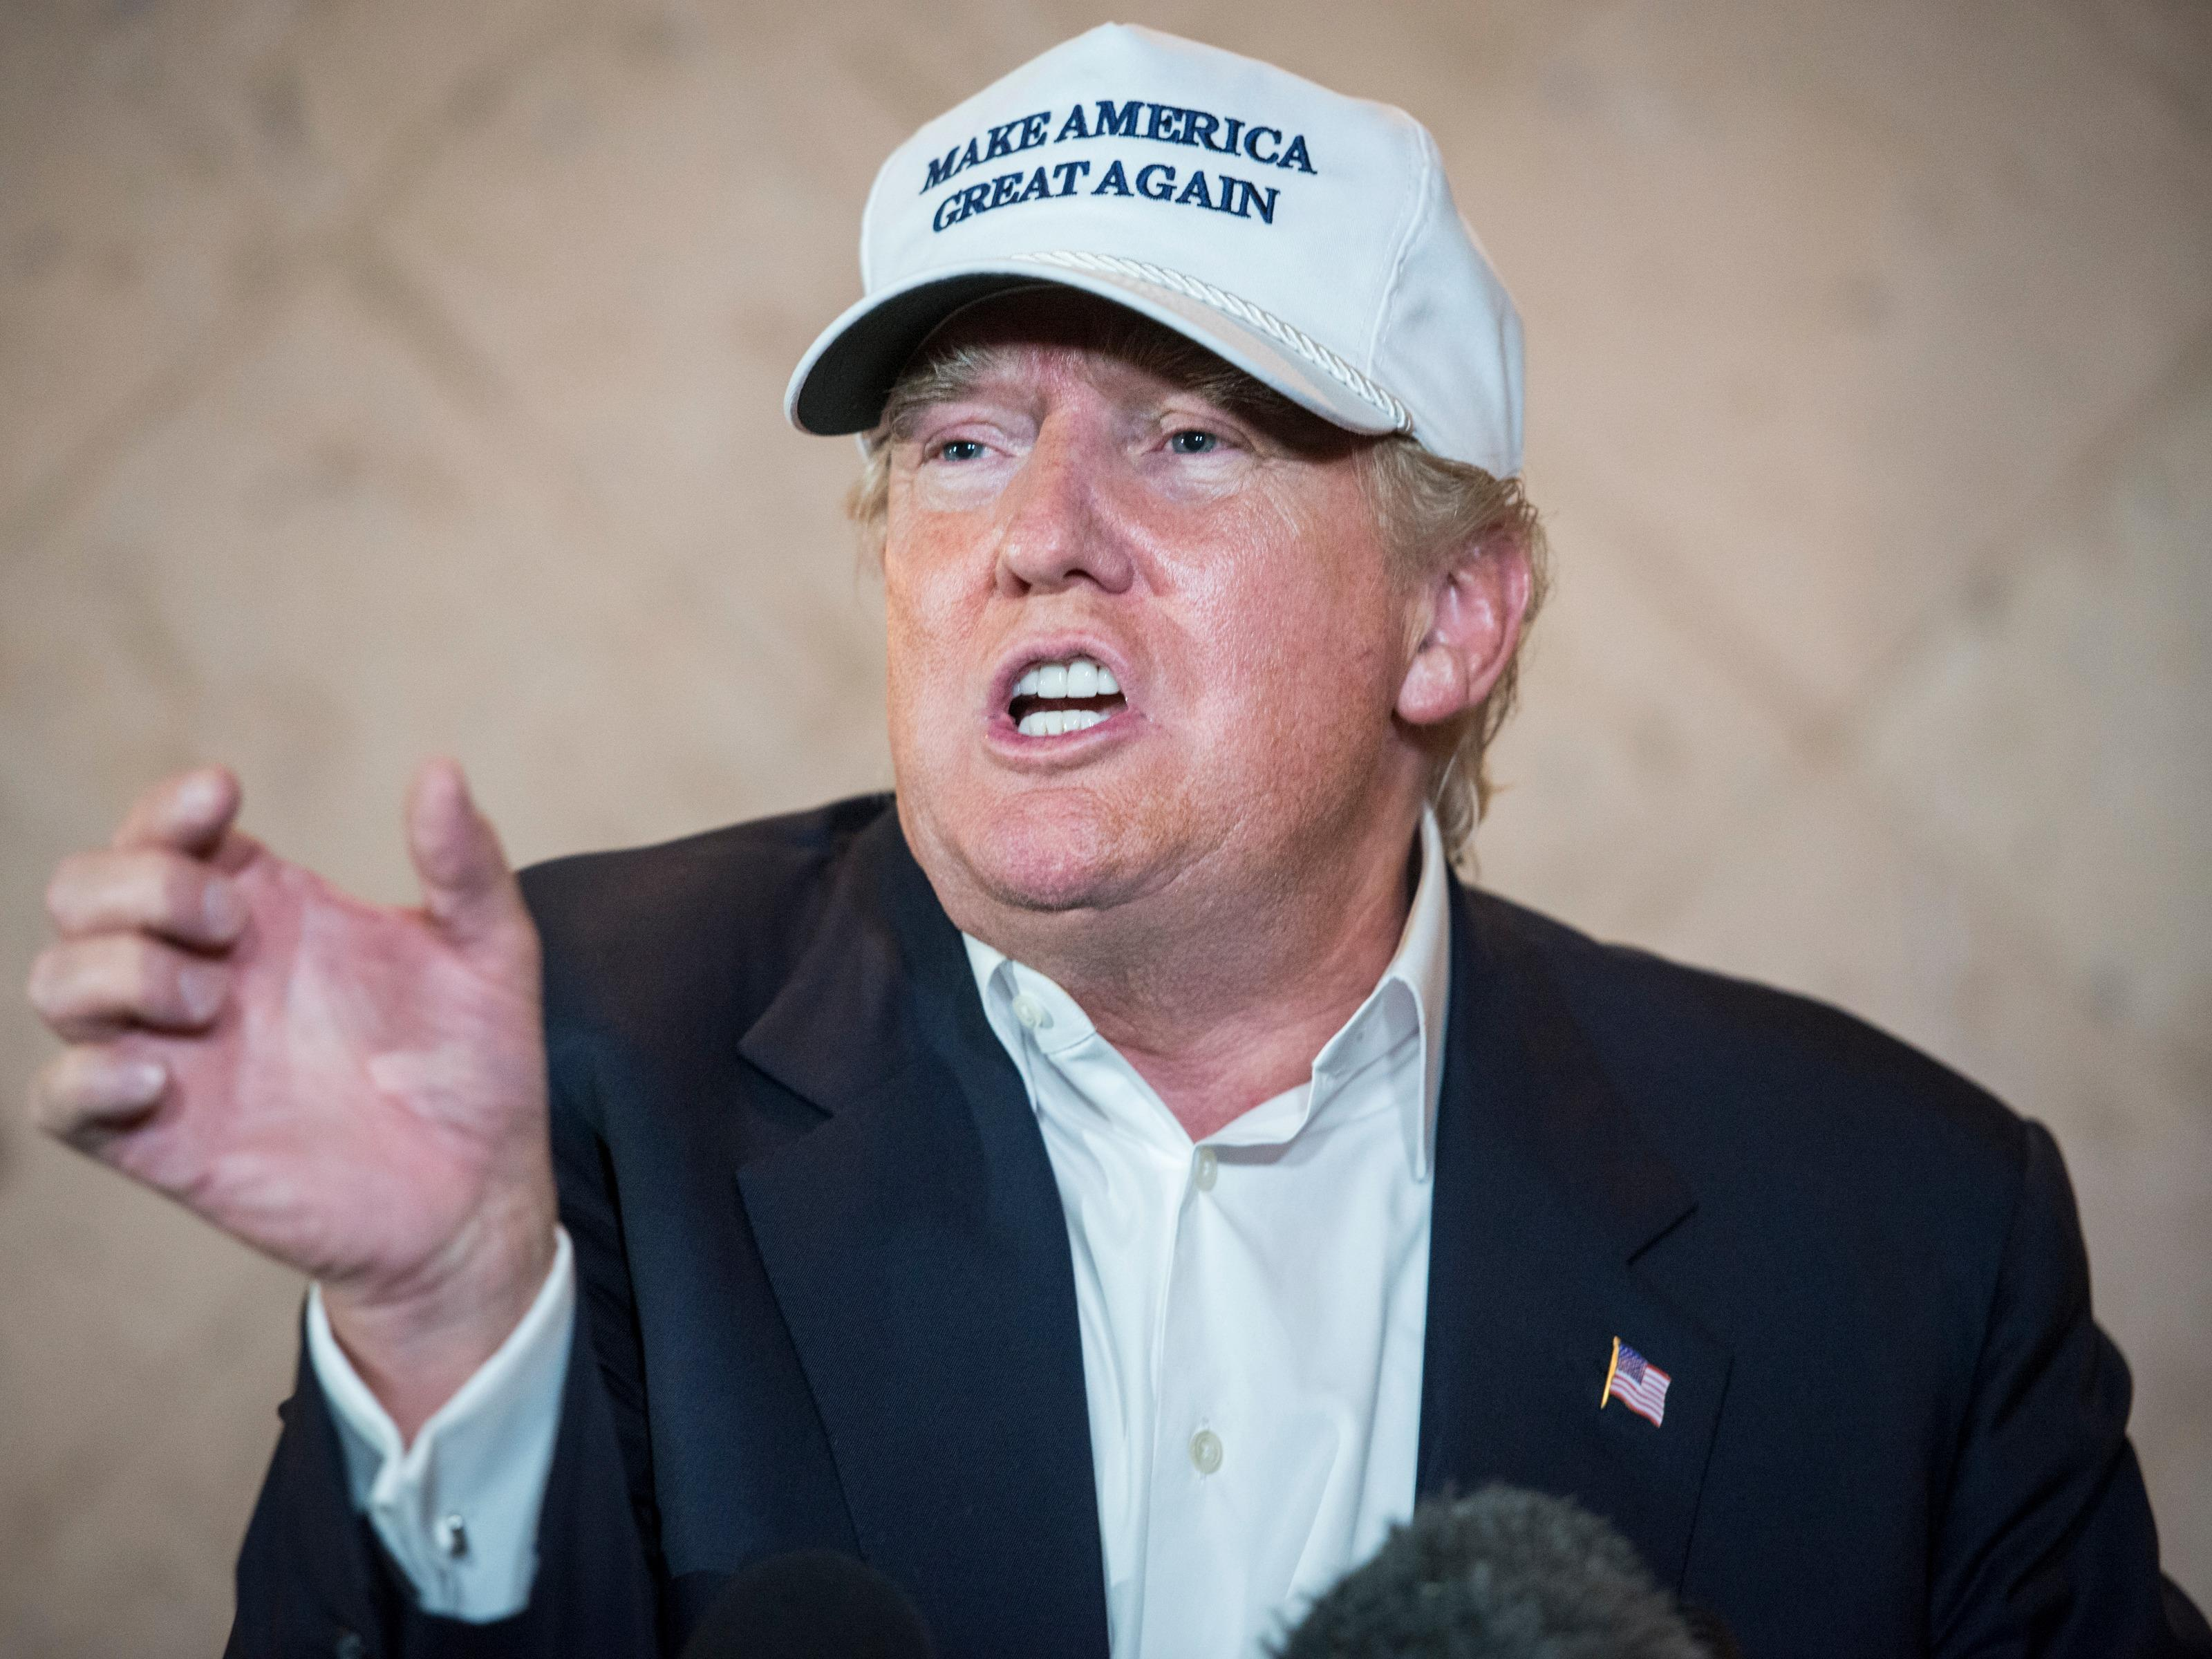 Donald Trump can't answer a simple question that's one of the fundamentals of his campaign